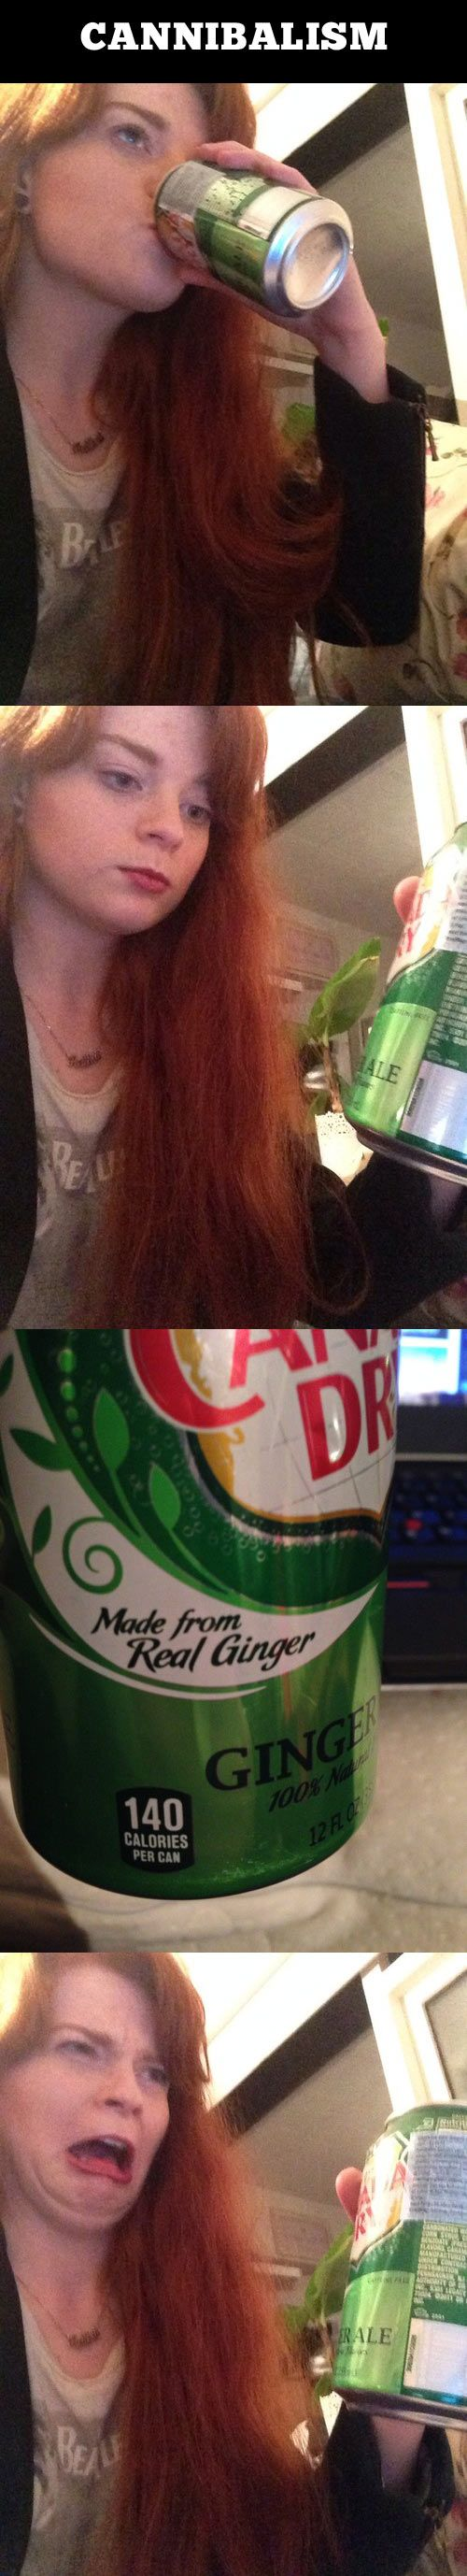 XD: Ginger Joke, Face, Funny Pictures, Funny Stuff, Funny Quotes, Redhead, Ginger Ale